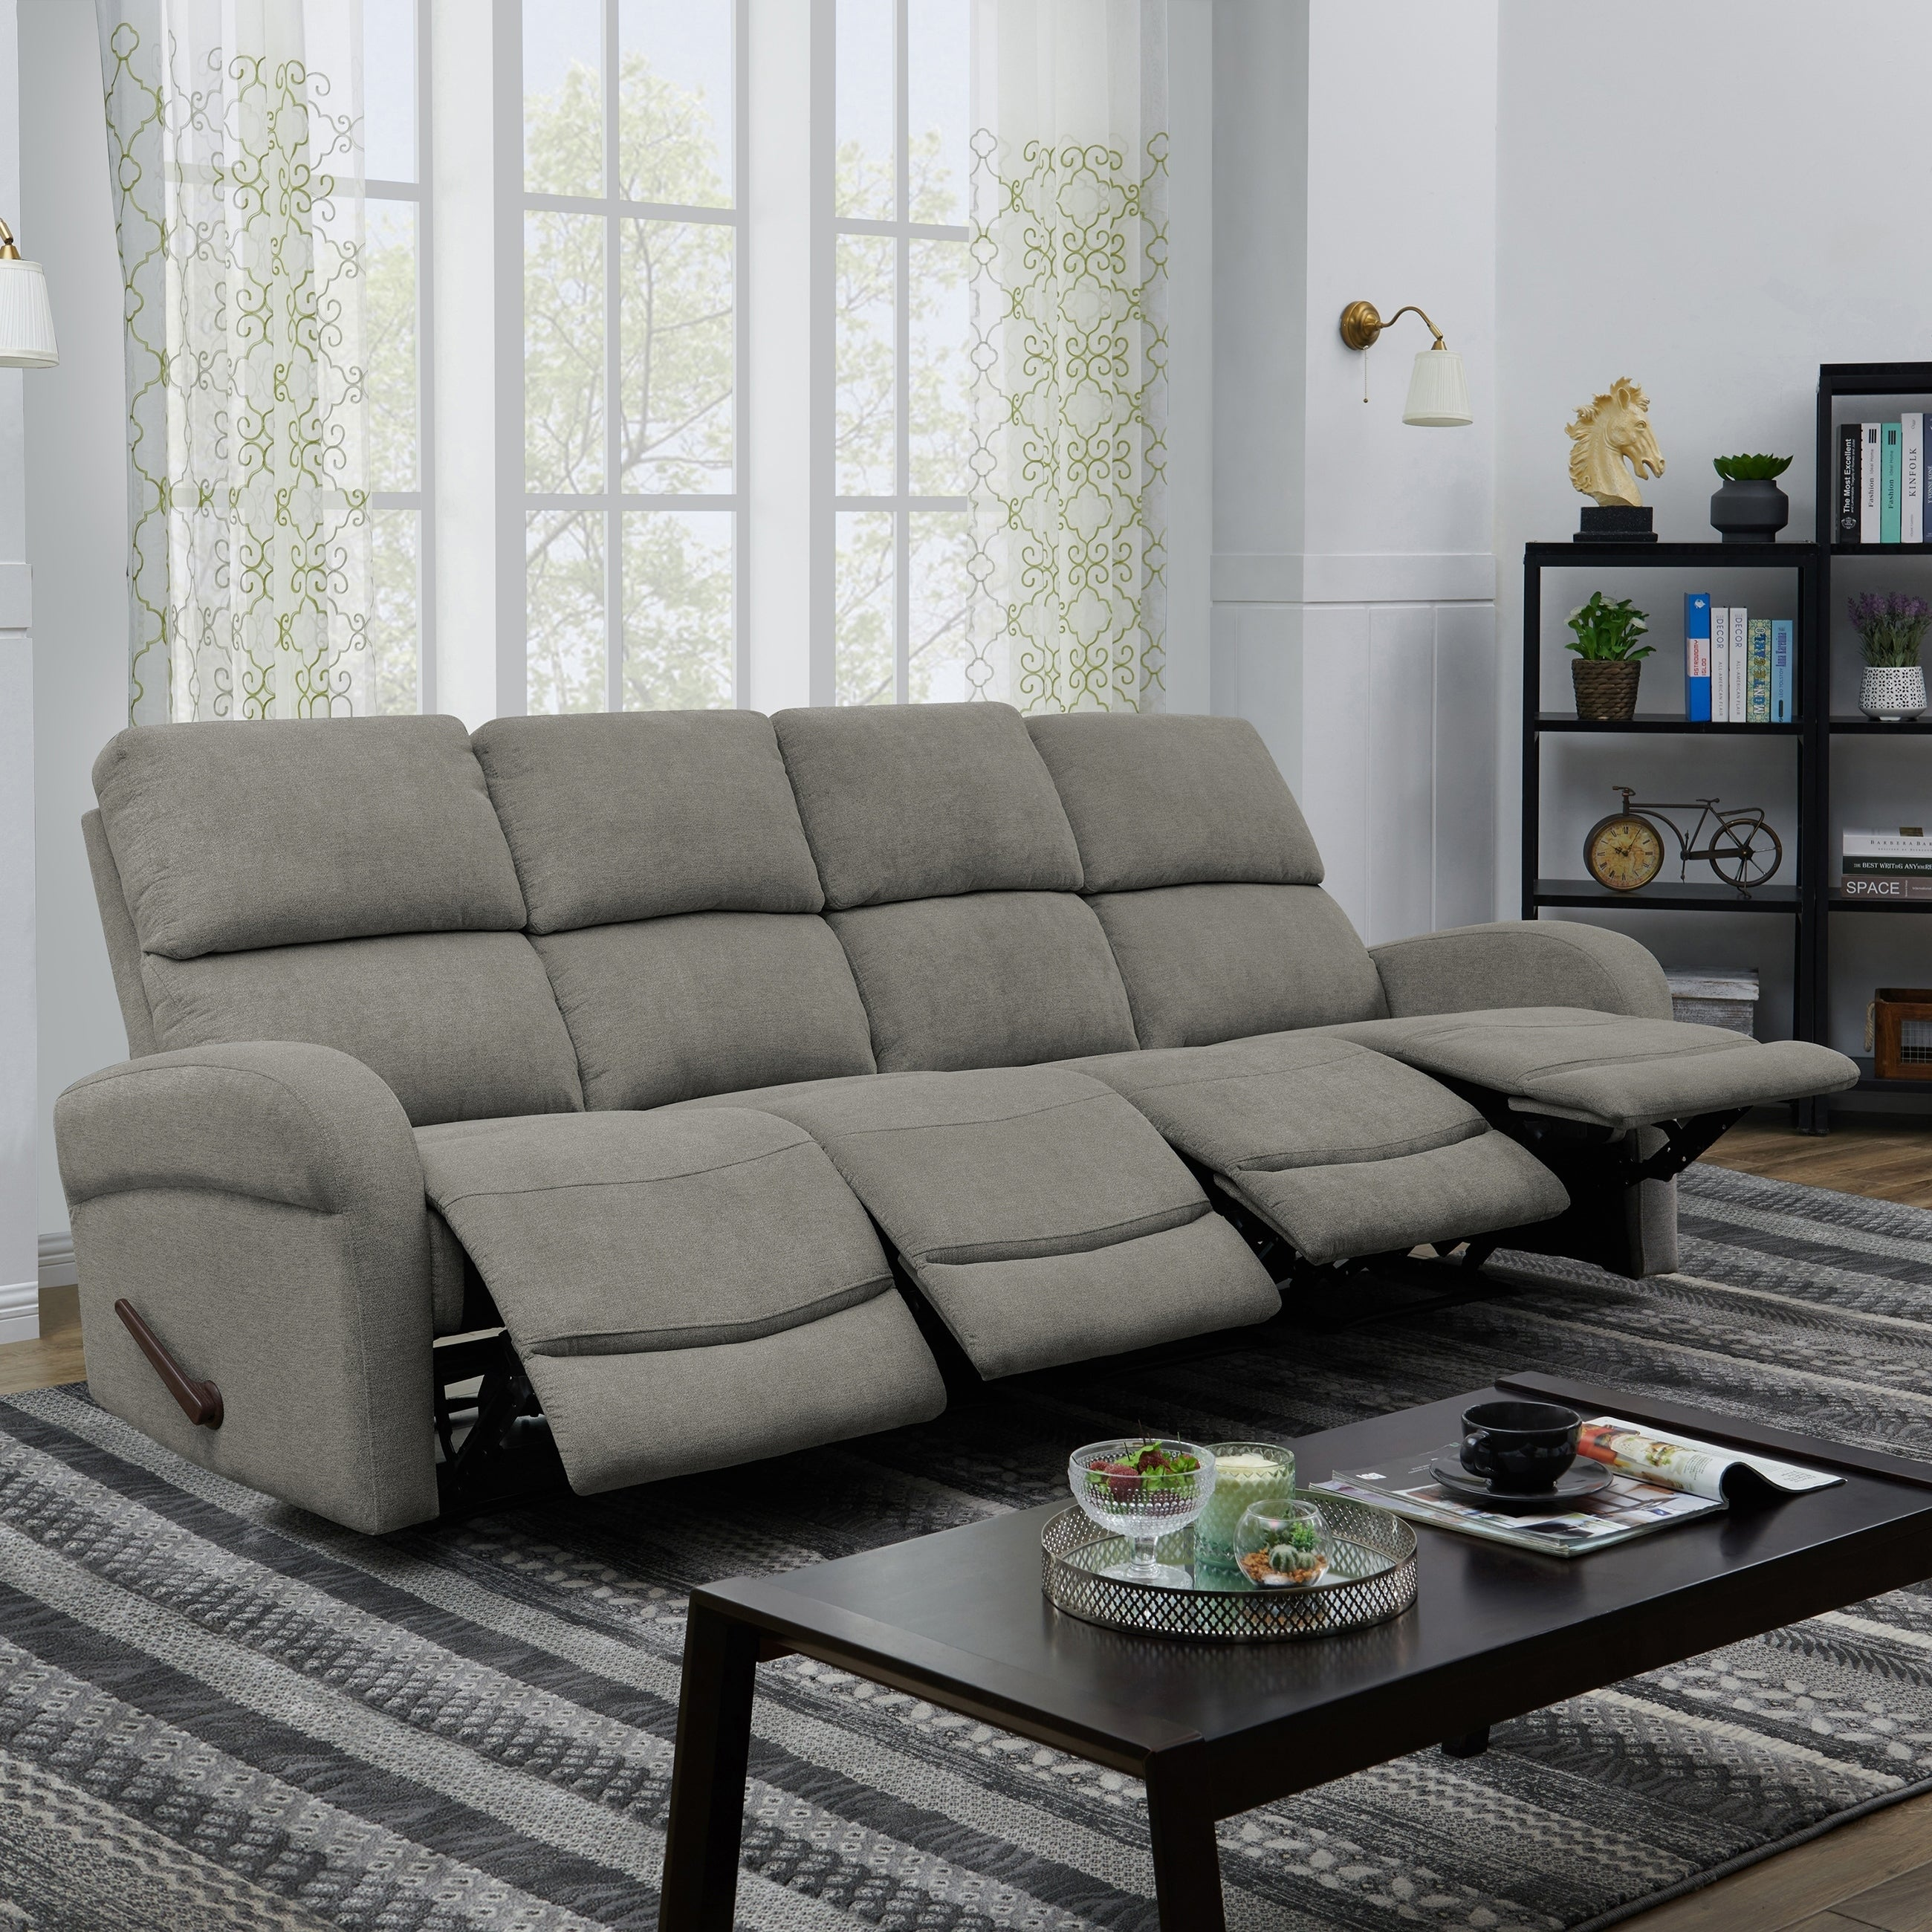 Copper Grove Herentals Grey Chenille 4-seat Recliner Sofa